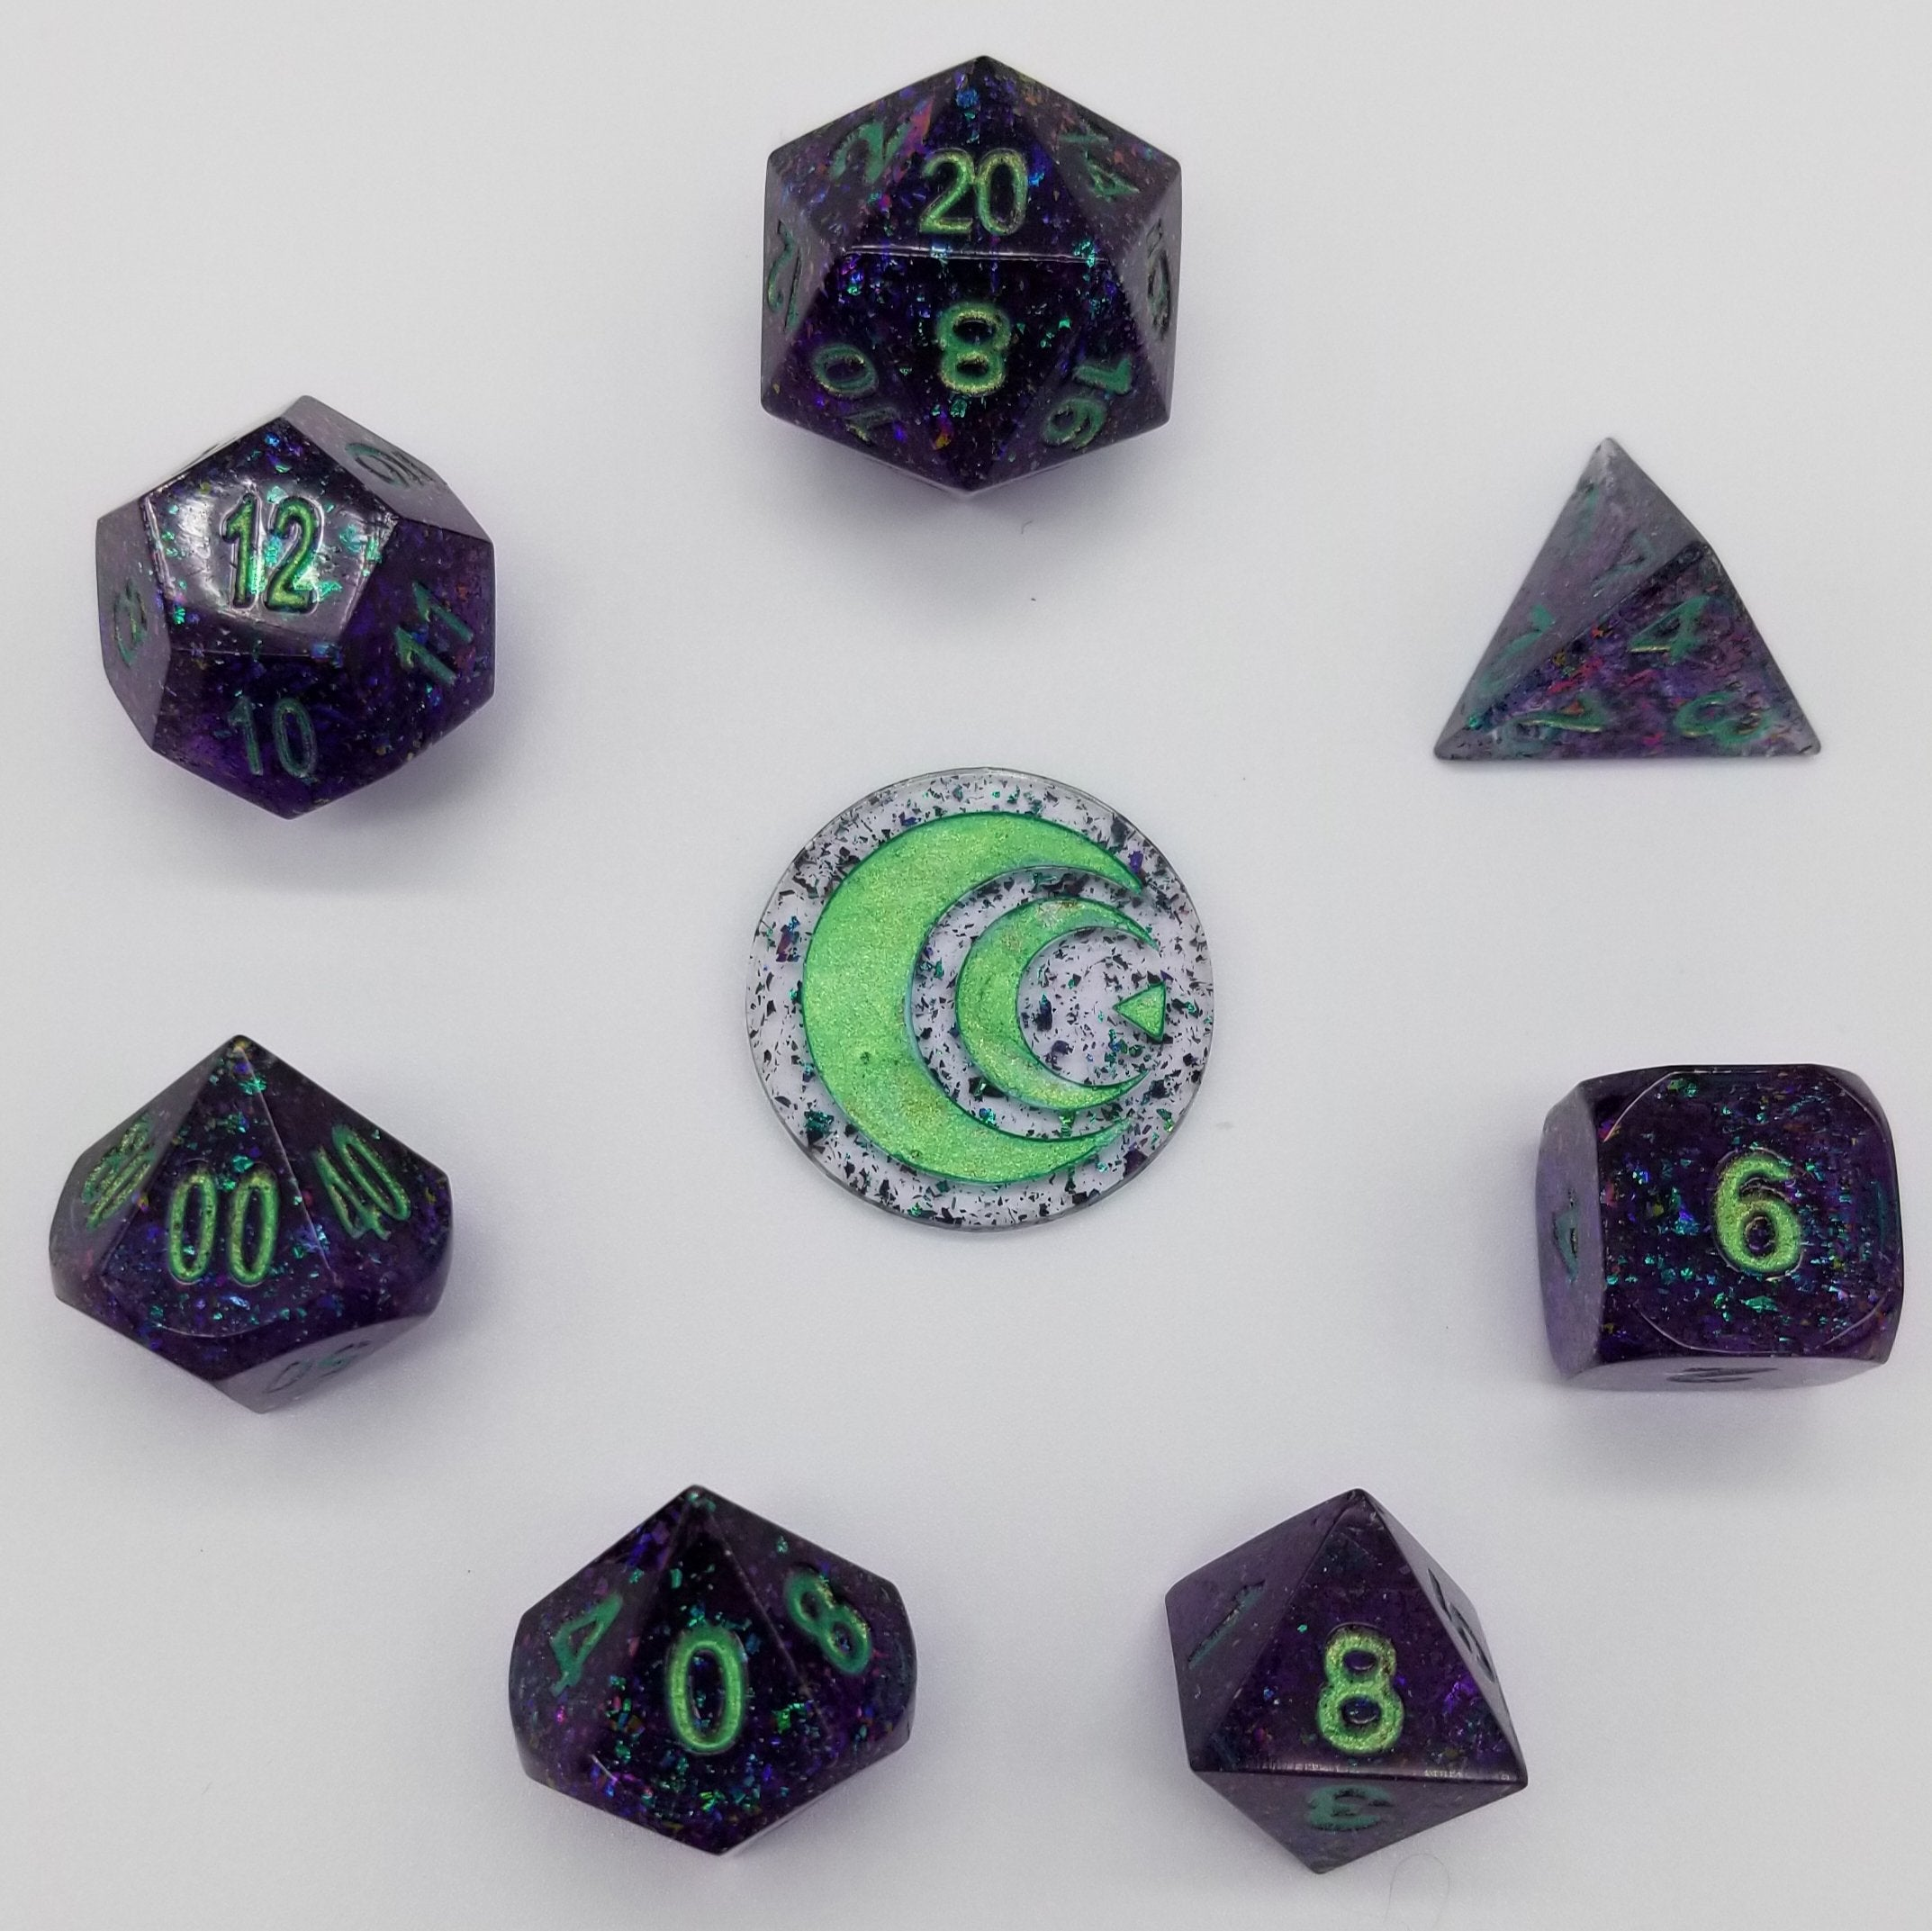 Handmade transparent dark purple resin dice with green-purple shift flakes inside and green ink.